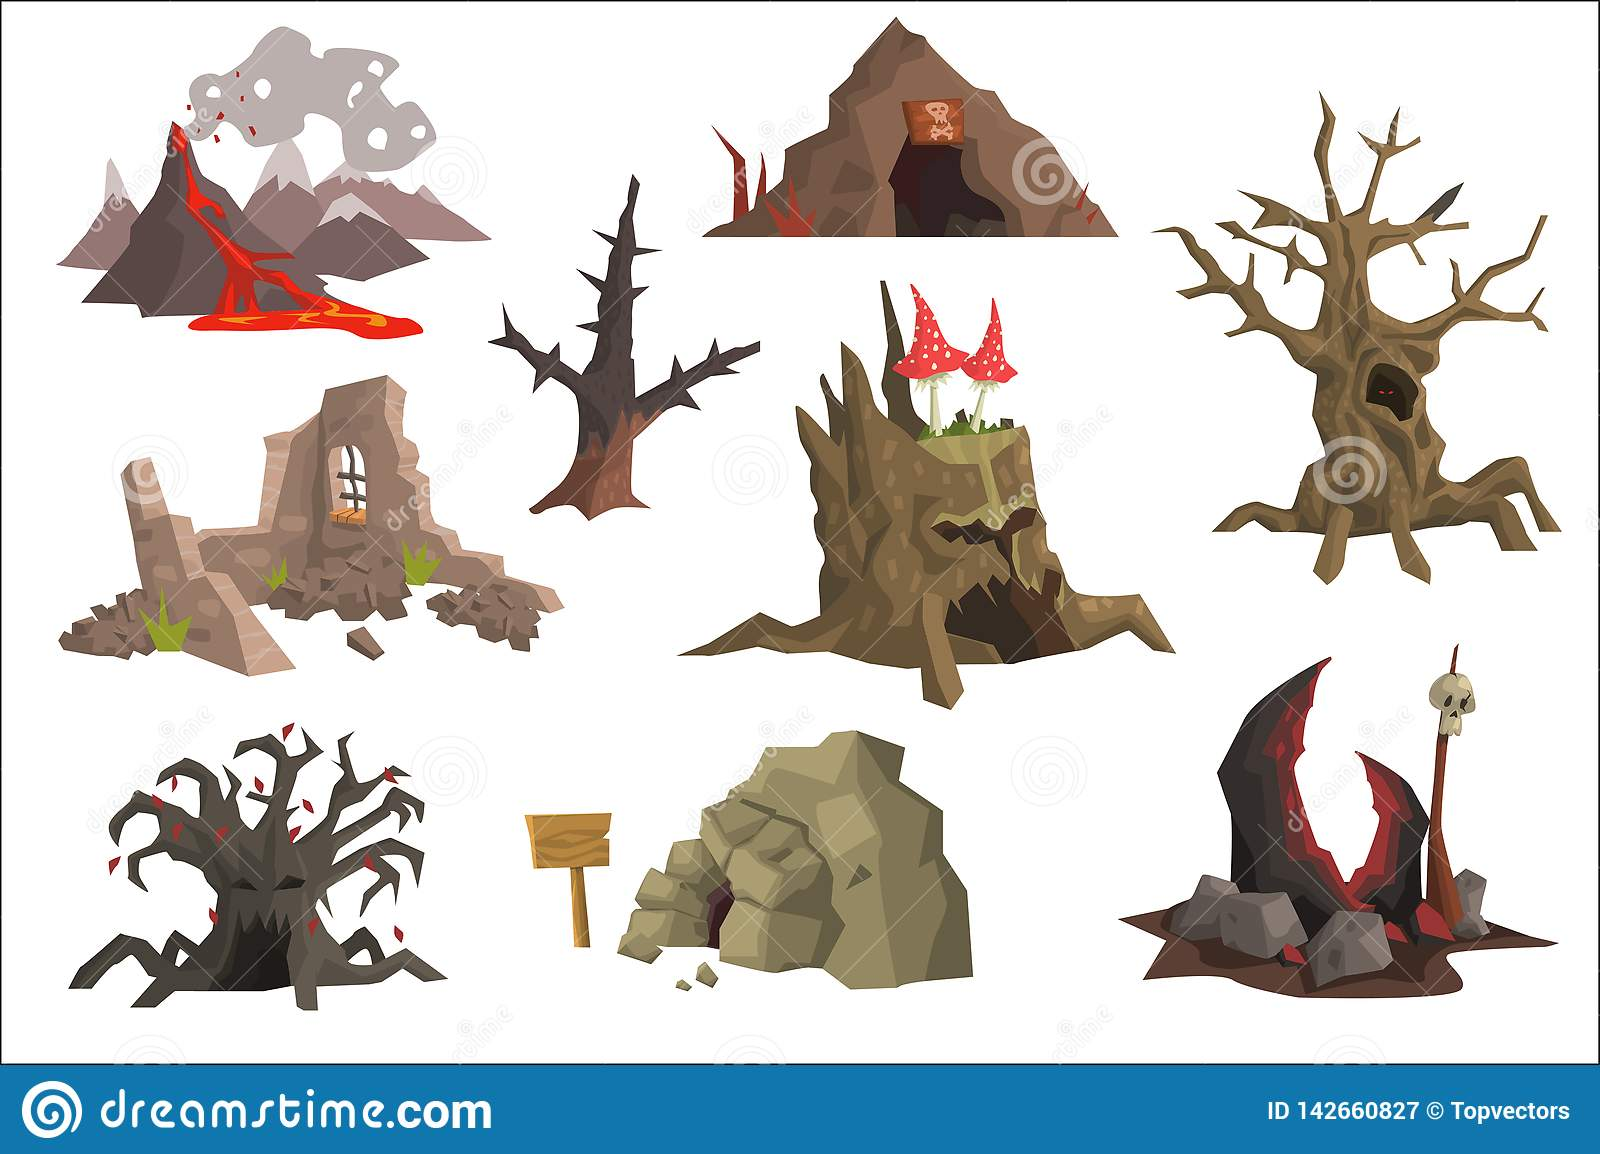 Flat vector set of landscape elements. Volcano with hot lava, ruins, swamp, old trees, cave, scary stump with mushrooms